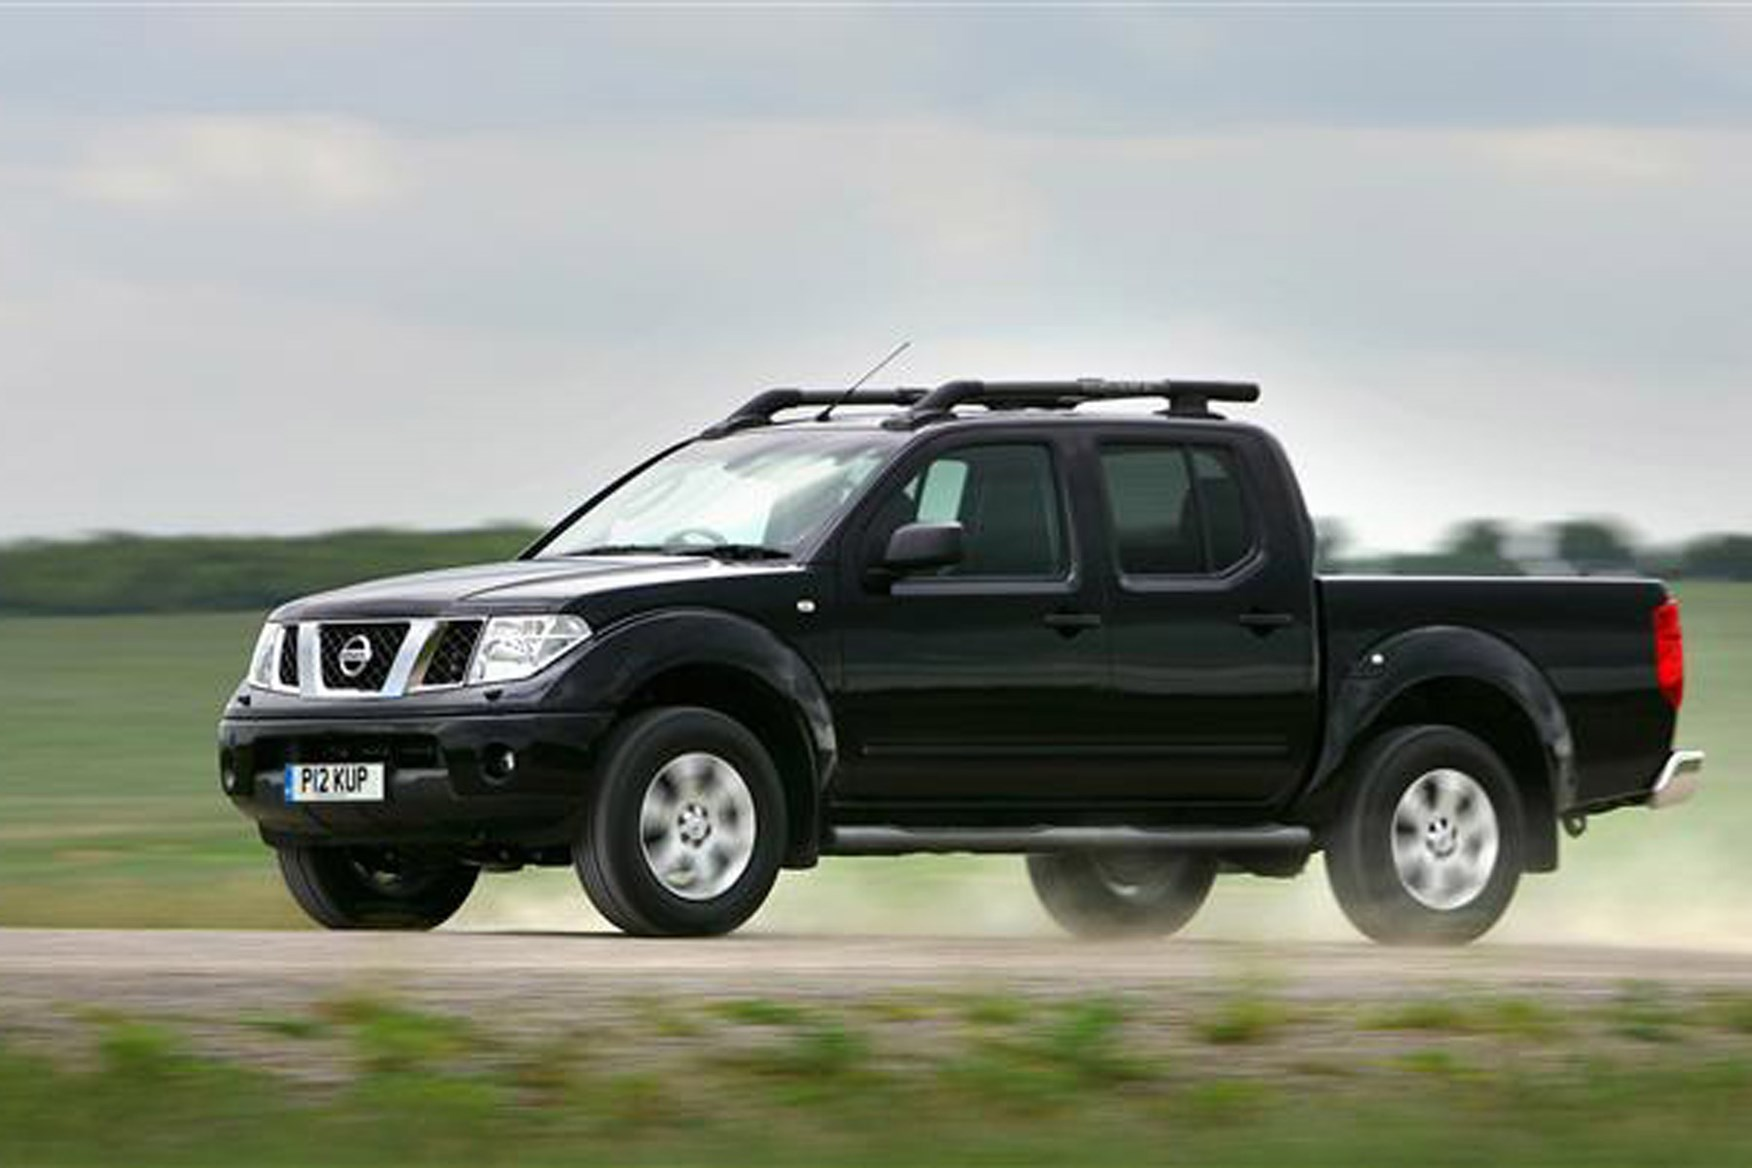 Nissan Navara 2005-2015 review on Parkers Vans - on the road